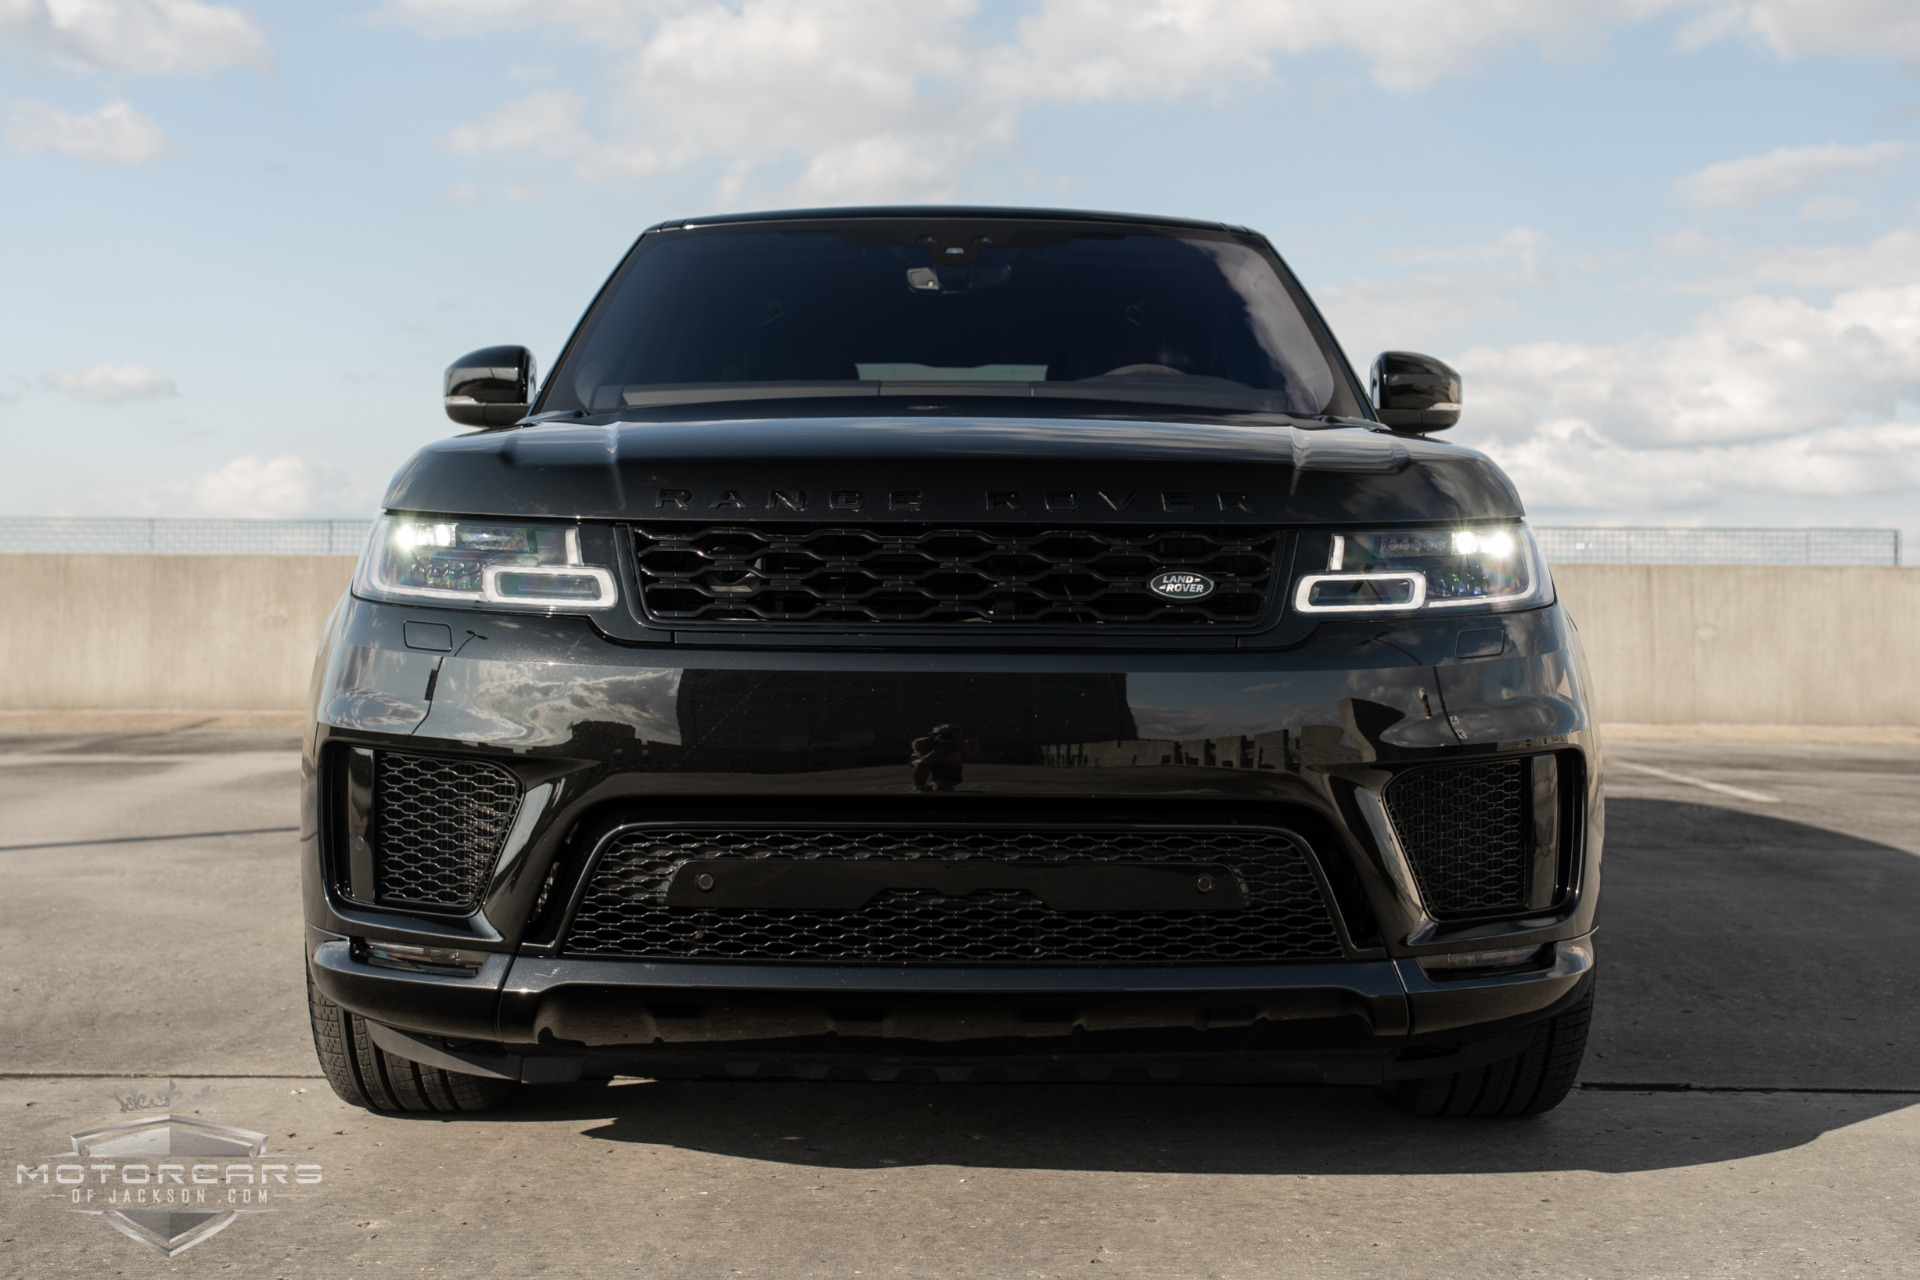 Used-2020-Land-Rover-Range-Rover-Sport-HST-for-sale-Jackson-MS